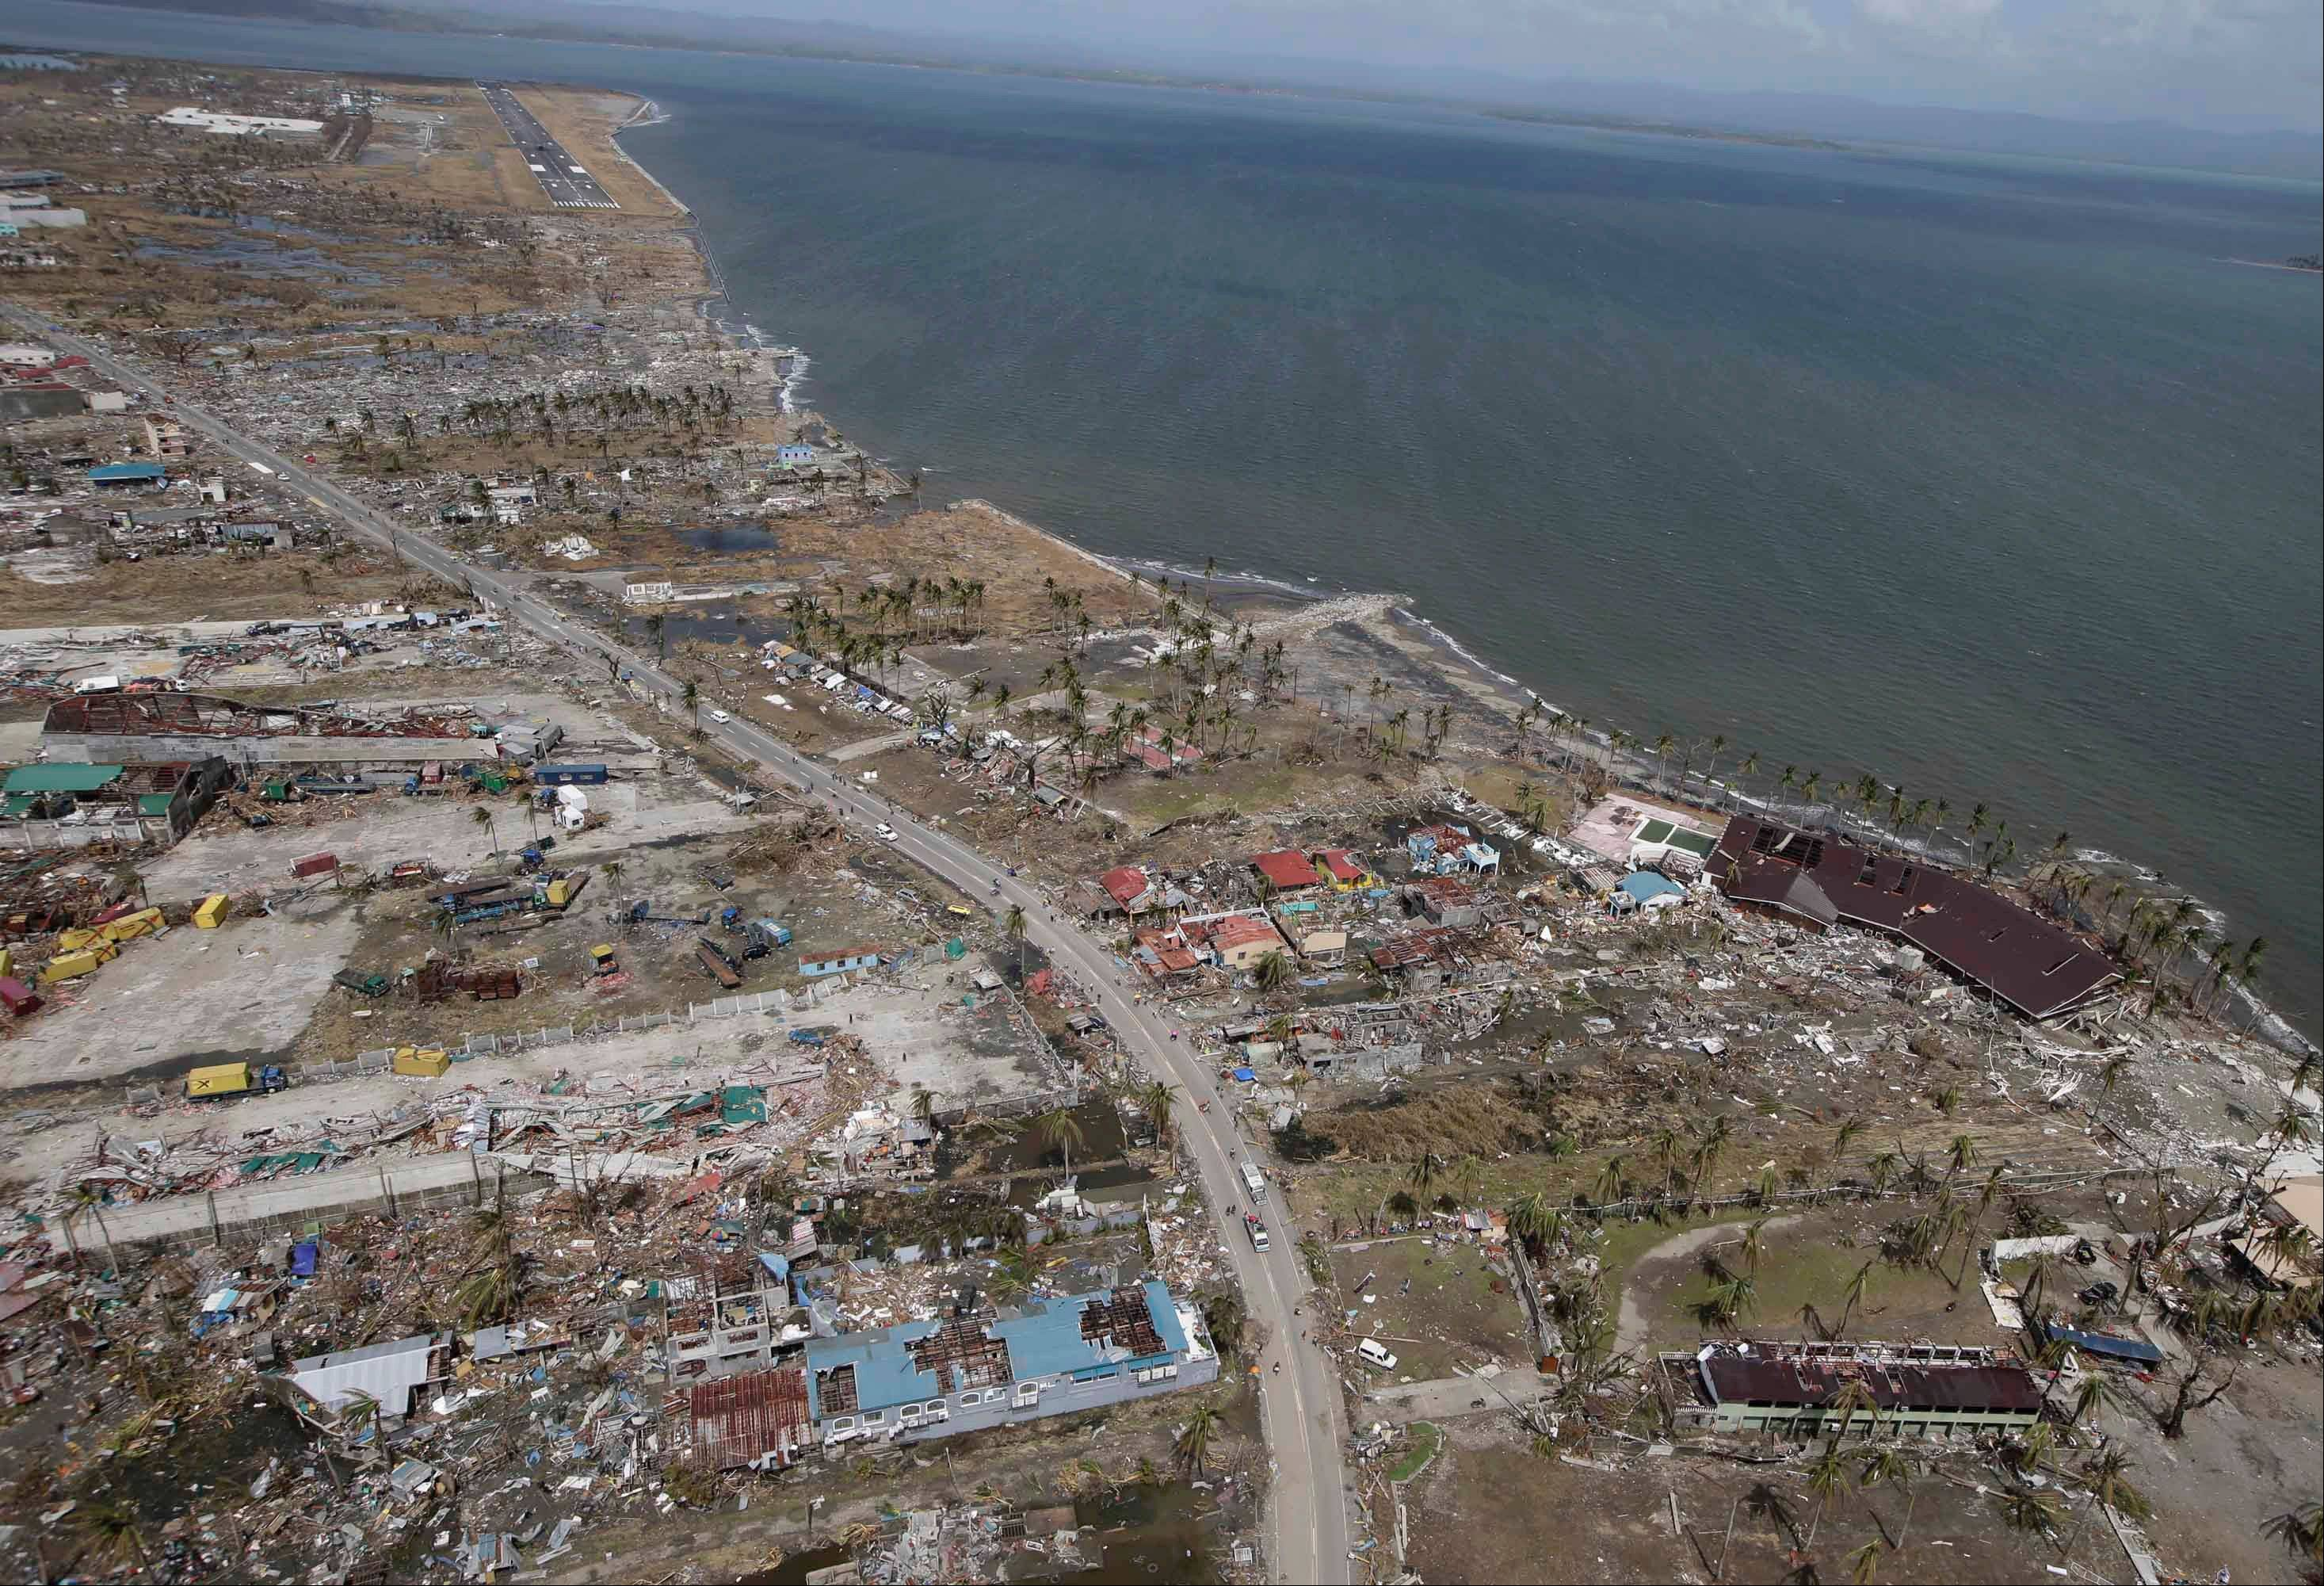 This aerial photo taken from a Philippine Air Force helicopter shows the devastation caused by Typhoon Haiyan in Tacloban city, Leyte province, central Philippines, Monday.